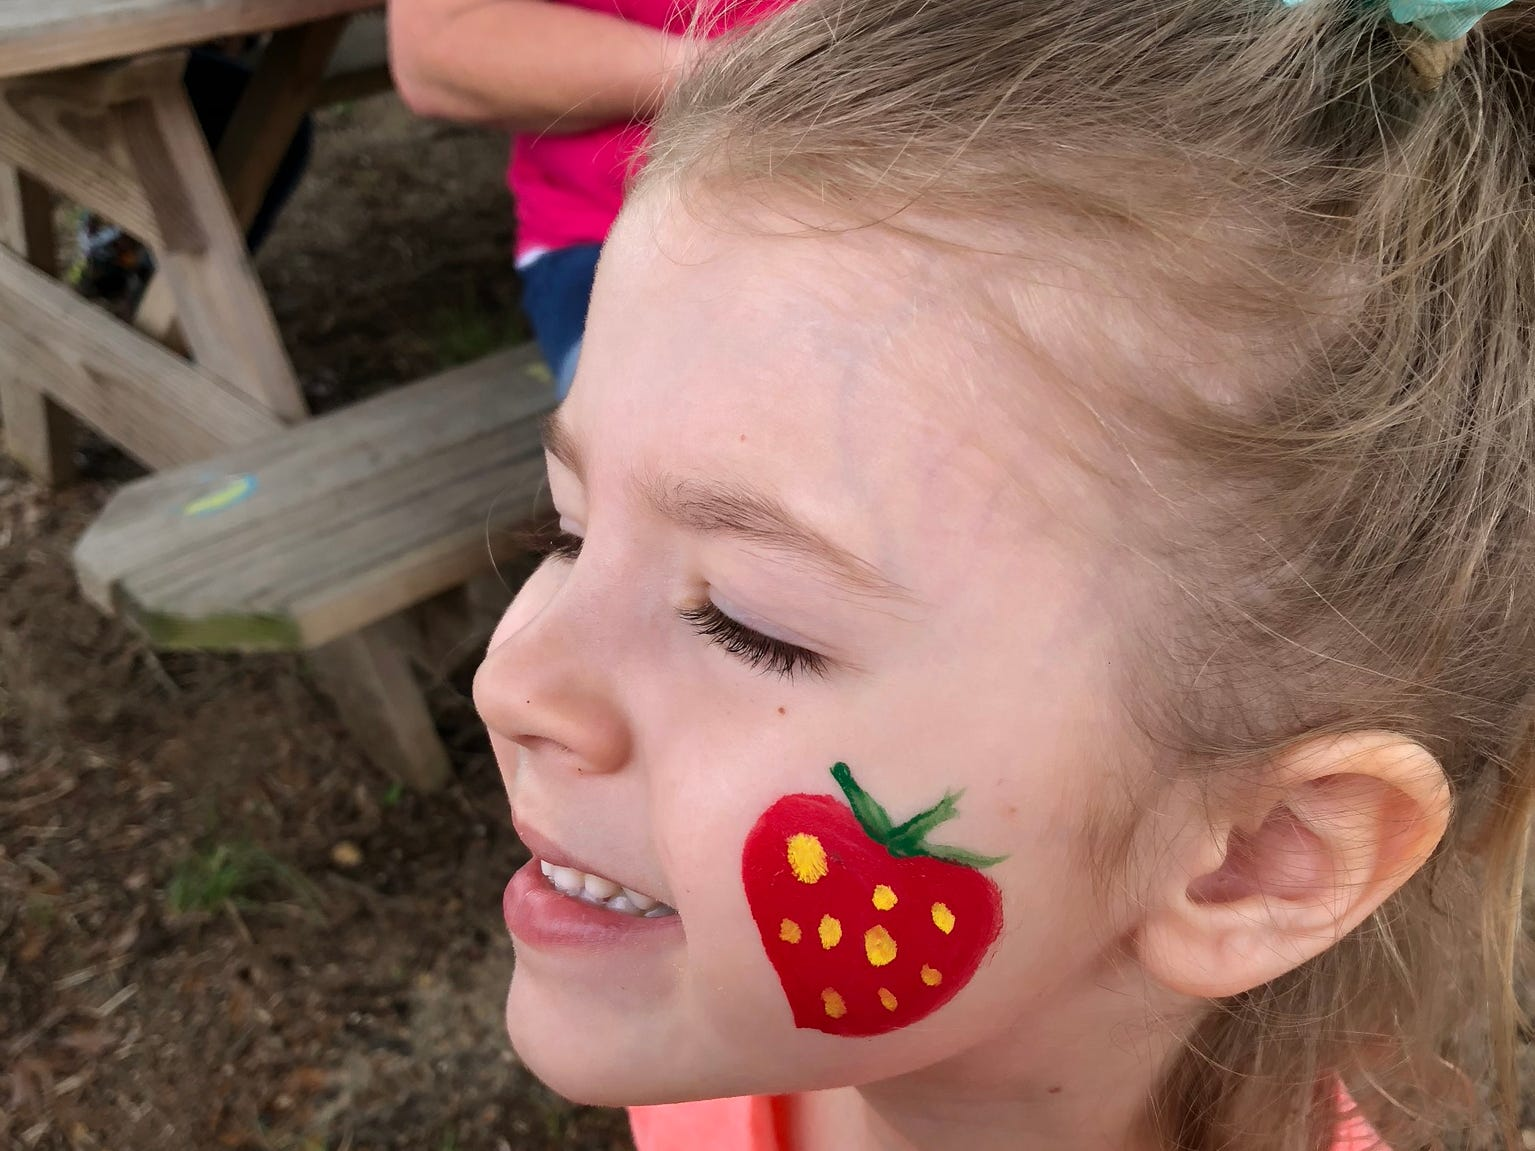 Avery Guidry has a strawberry painted on her face April 6 at Mrs. Heather's Strawberry Farm in Albany, Louisiana.